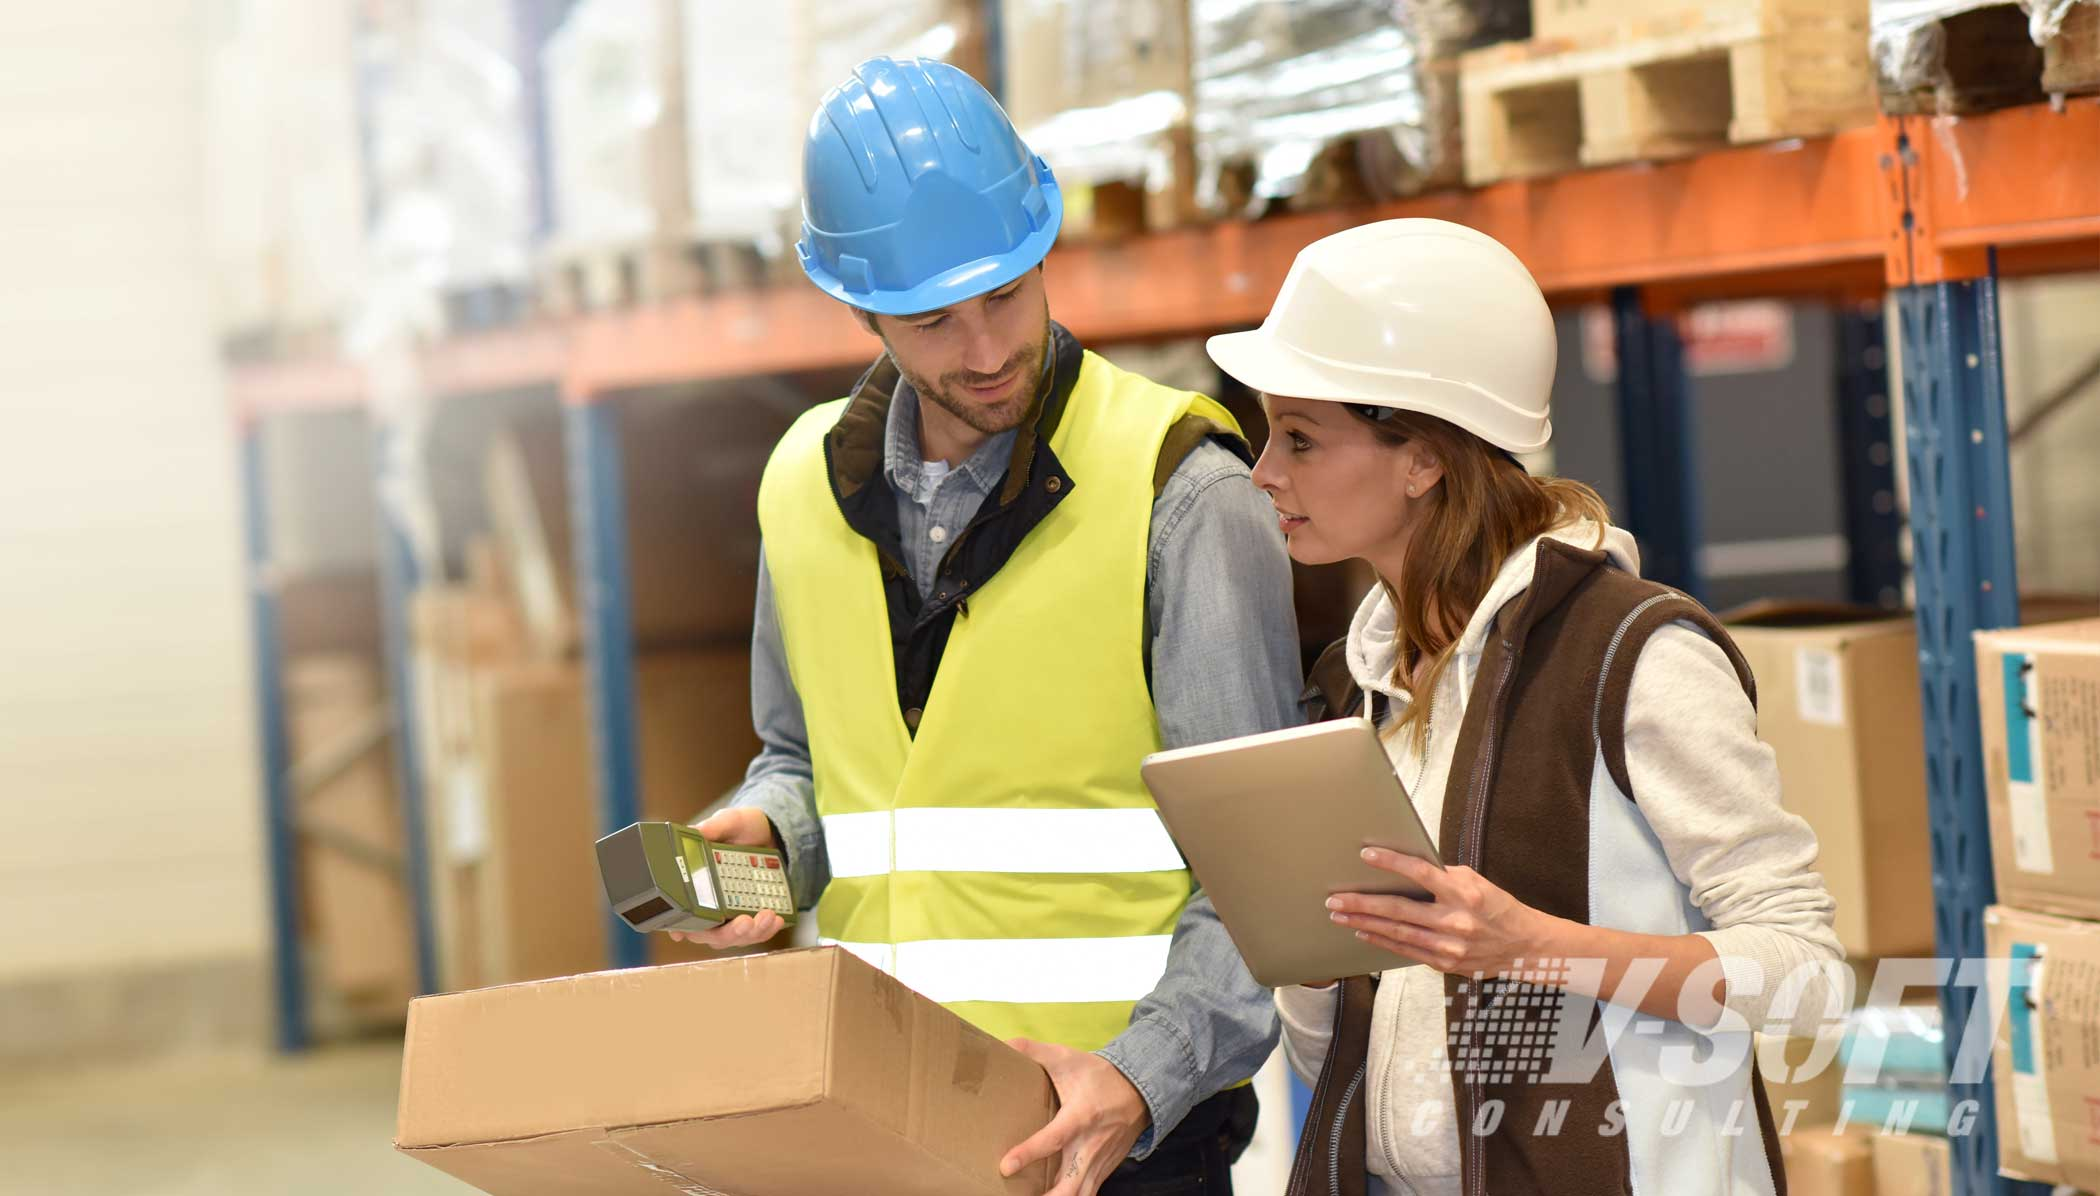 Warehouse workers using mobile app for logistics